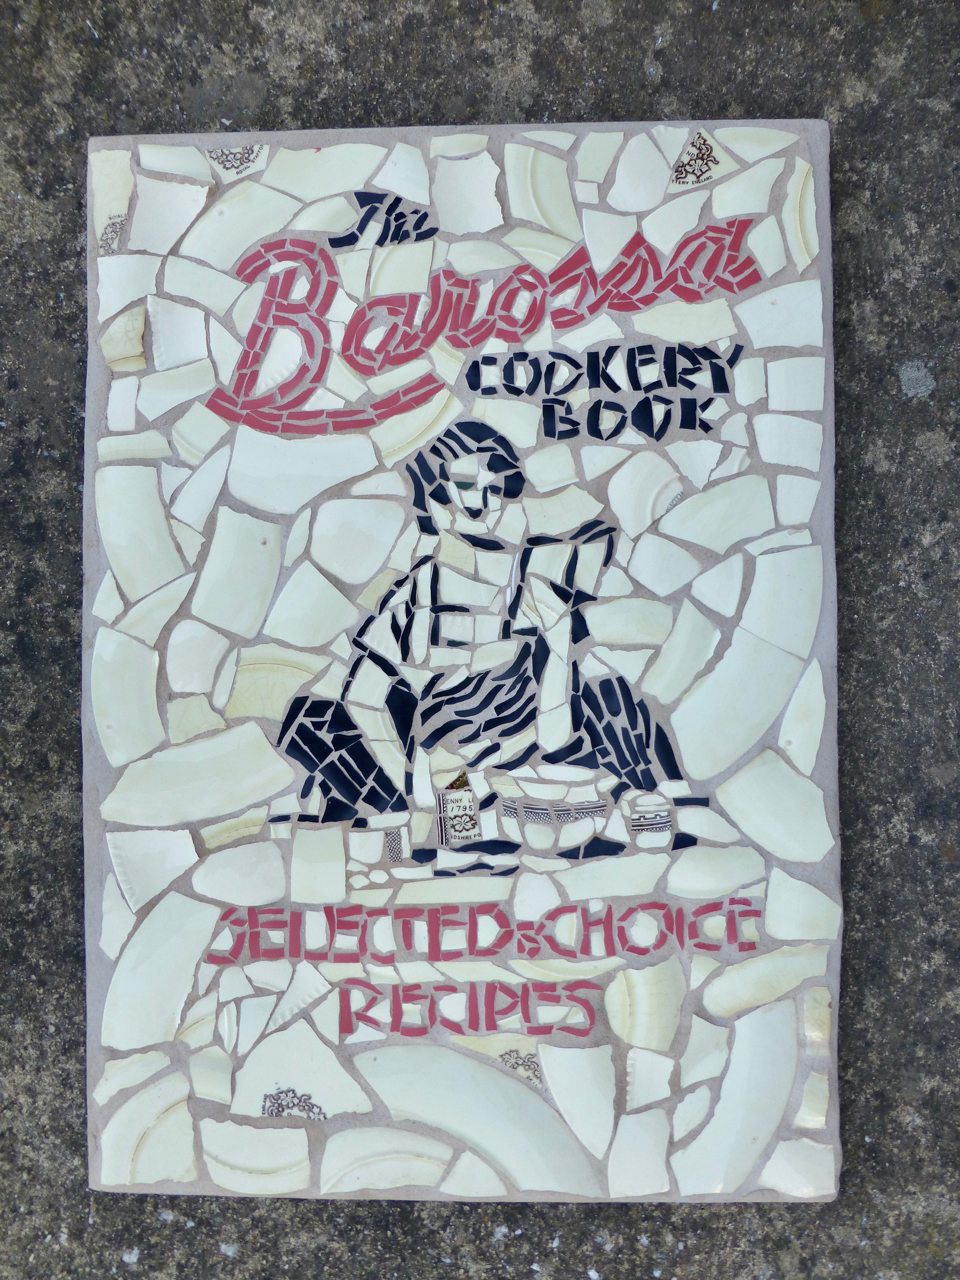 Barossa_Mosaic_CookeryBook_2017_China_57x39.jpg